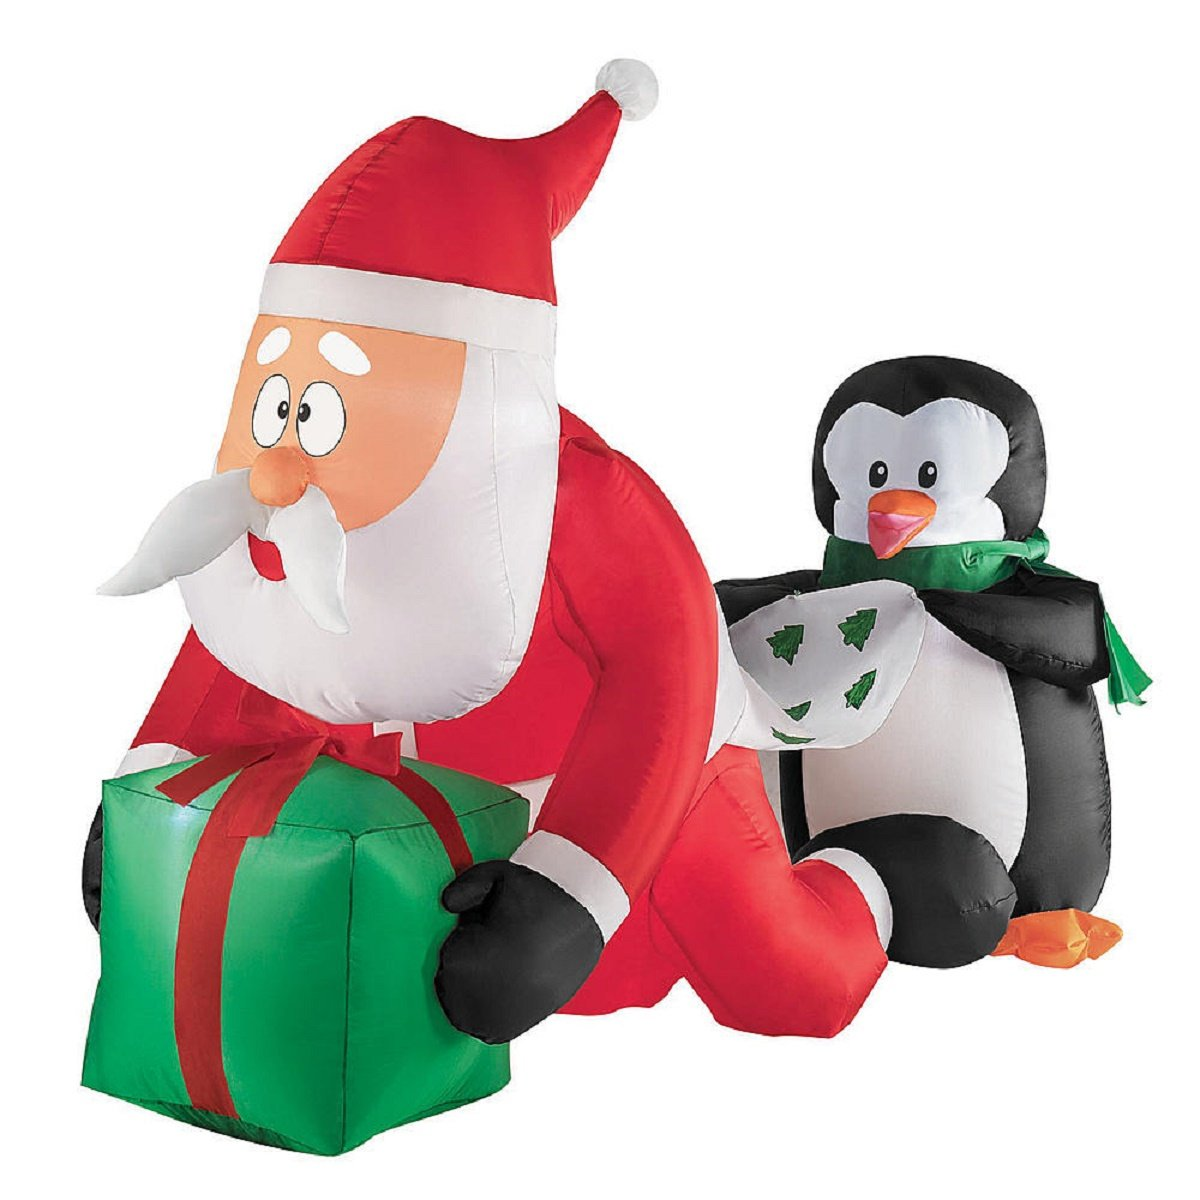 amazoncom christmas inflatable 4 whimsical santa and penguin scene by gemmy garden outdoor - Inflatable Christmas